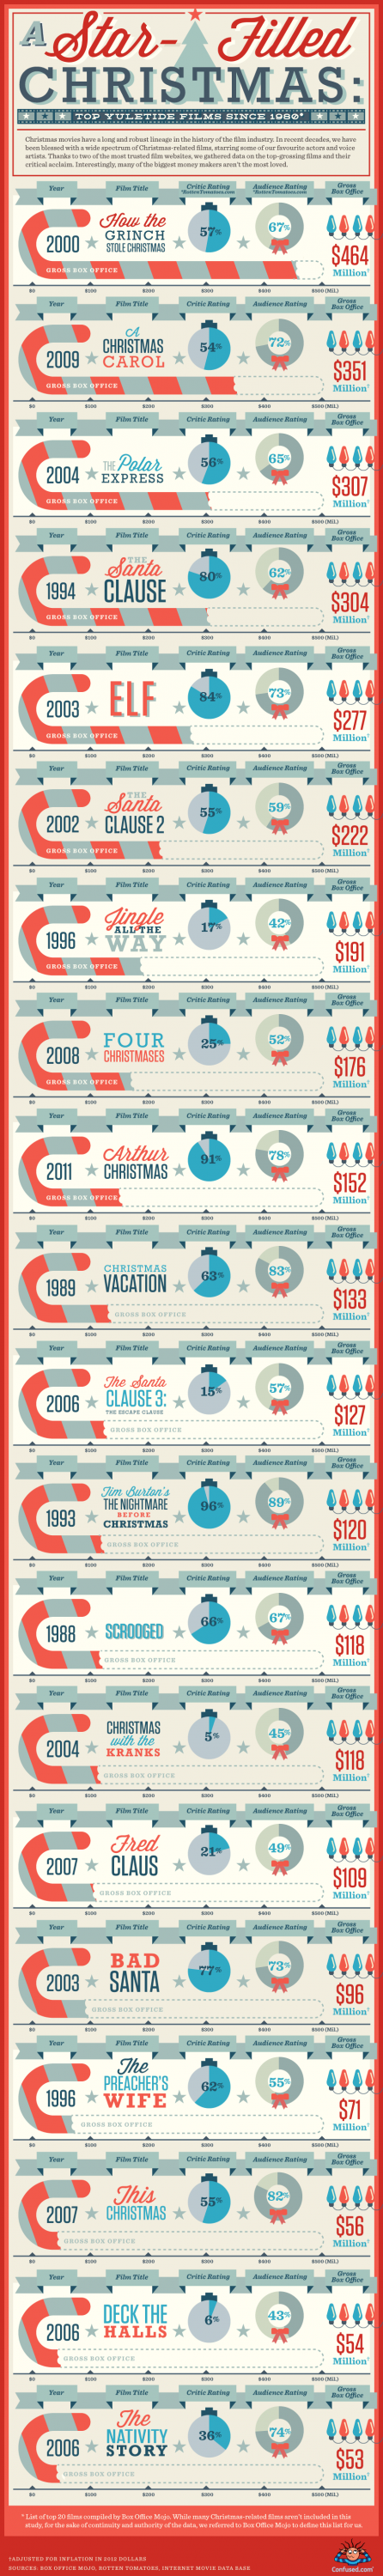 Top Christmas Films Infographic